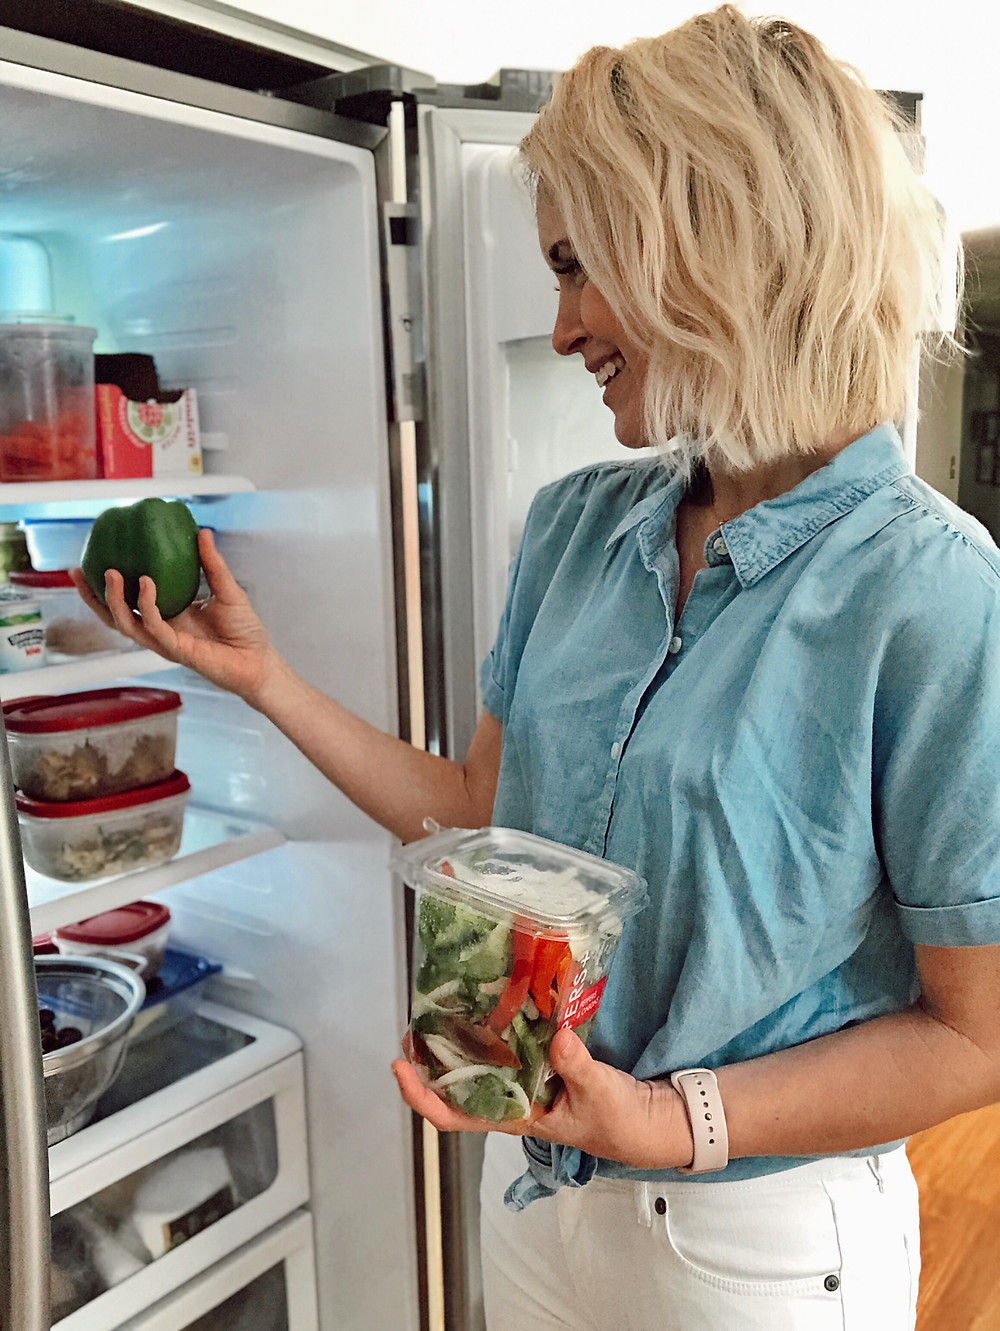 woman wearing chambray blouse pulls fresh vegetables out of her refrigerator